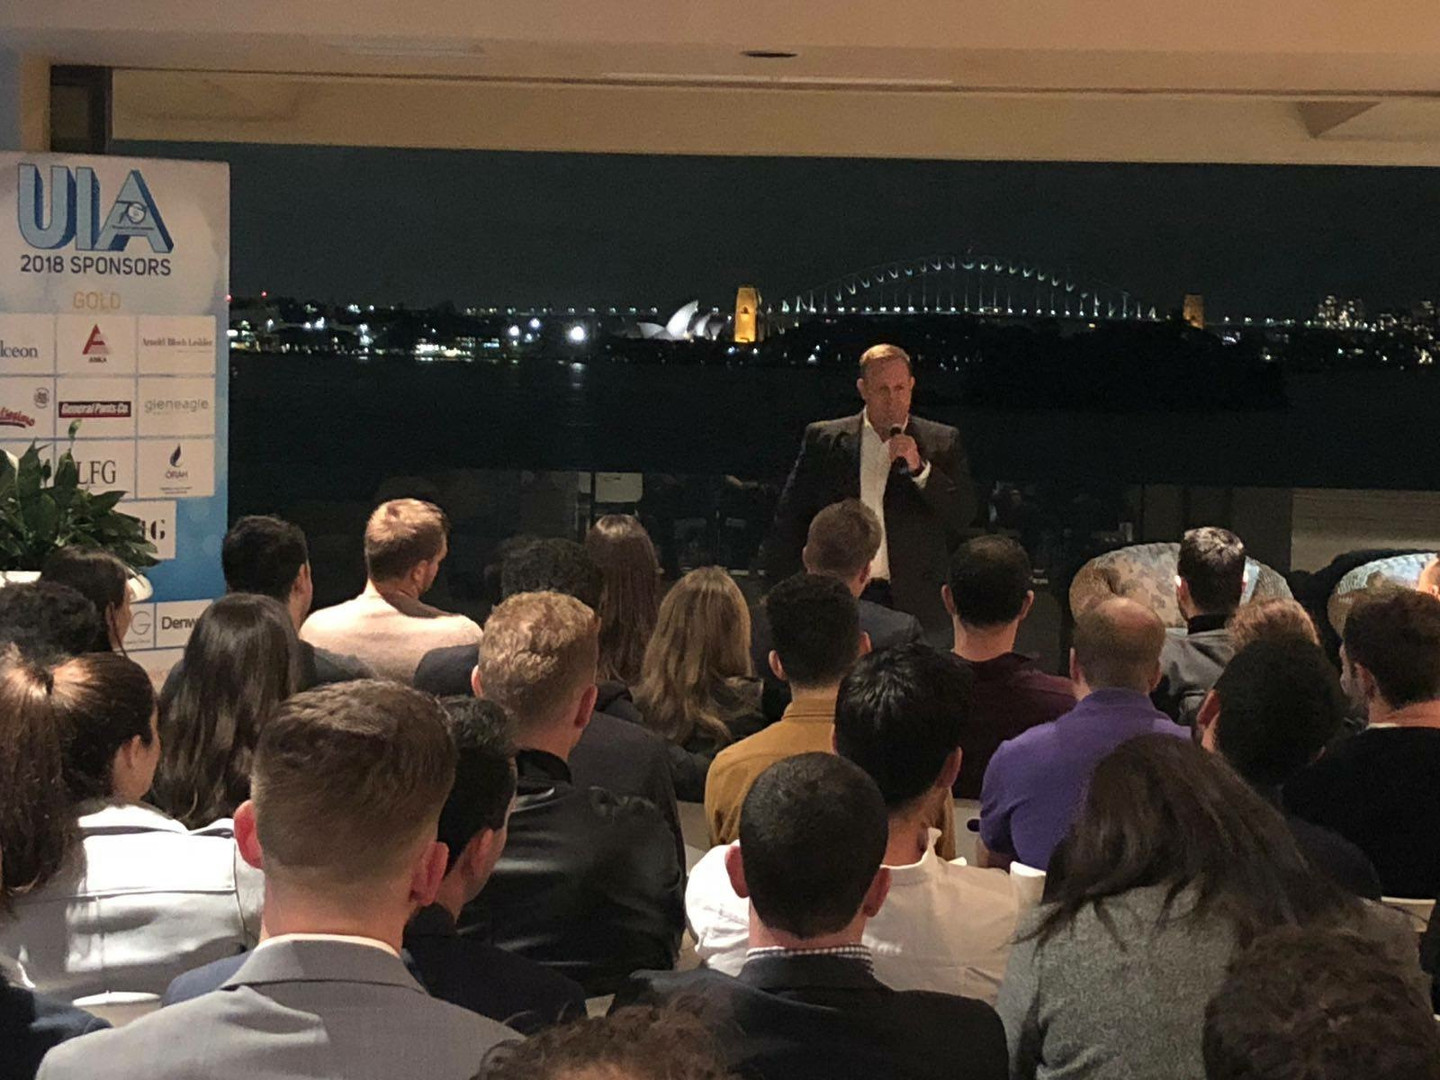 Speaking event in Australia